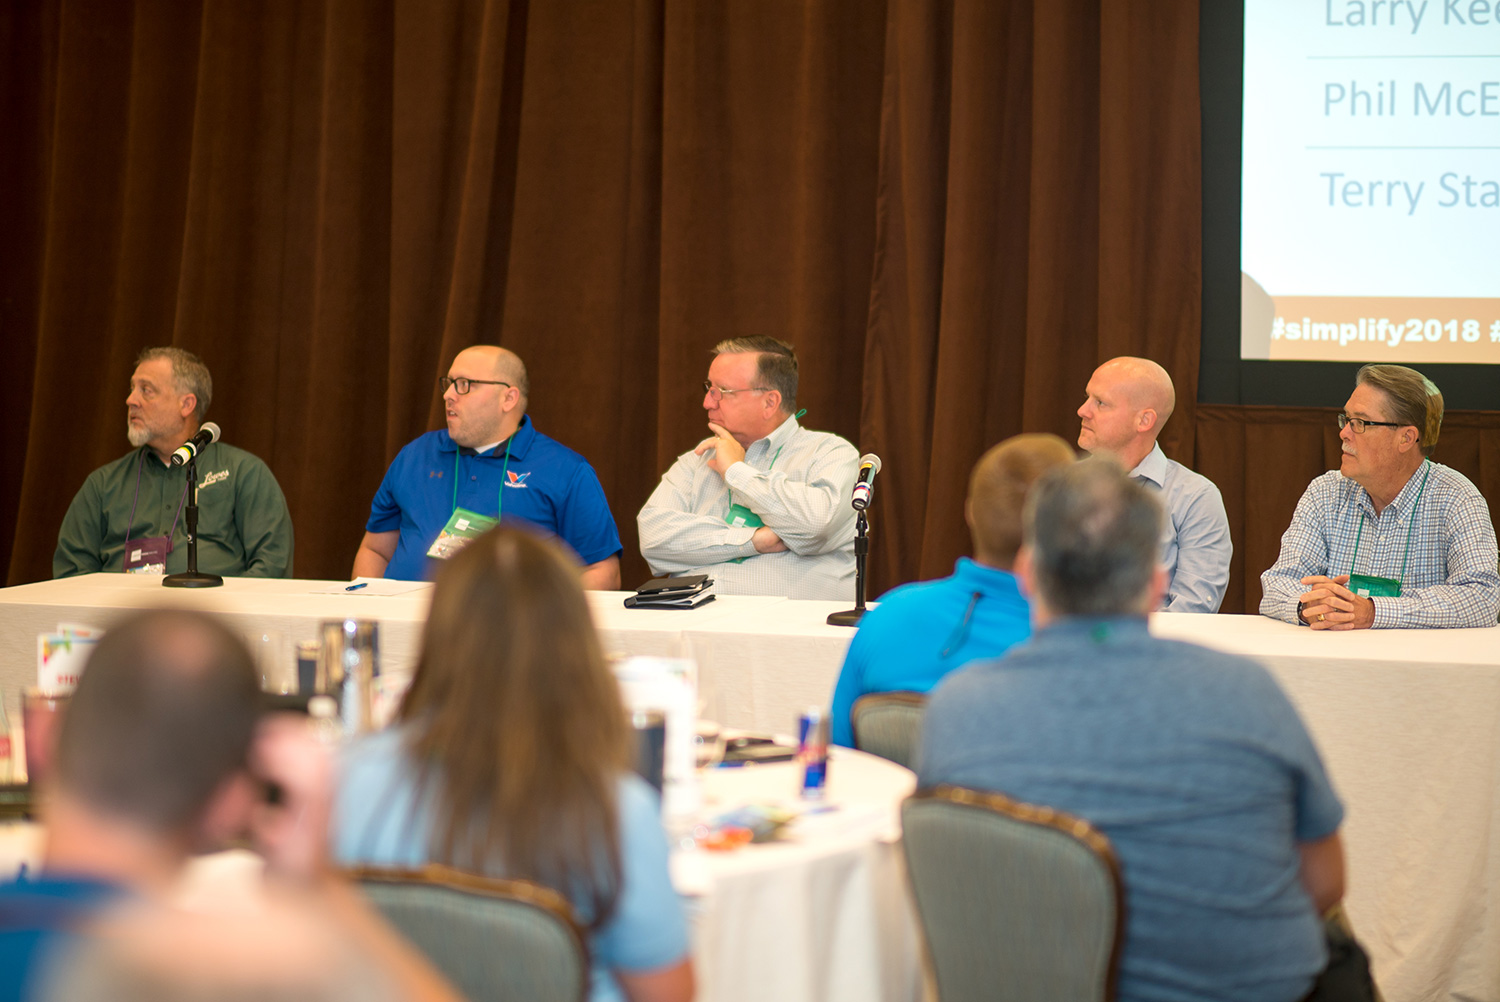 Terry Stanley (Lowes Foods), Joe Carter (Valvoline Instant Oil Change), Larry Keehne (Northgate Gonzalez Markets), Phil McElfresh (Heinen's Fine Foods), Lynn Olsen (The Innovation Group)